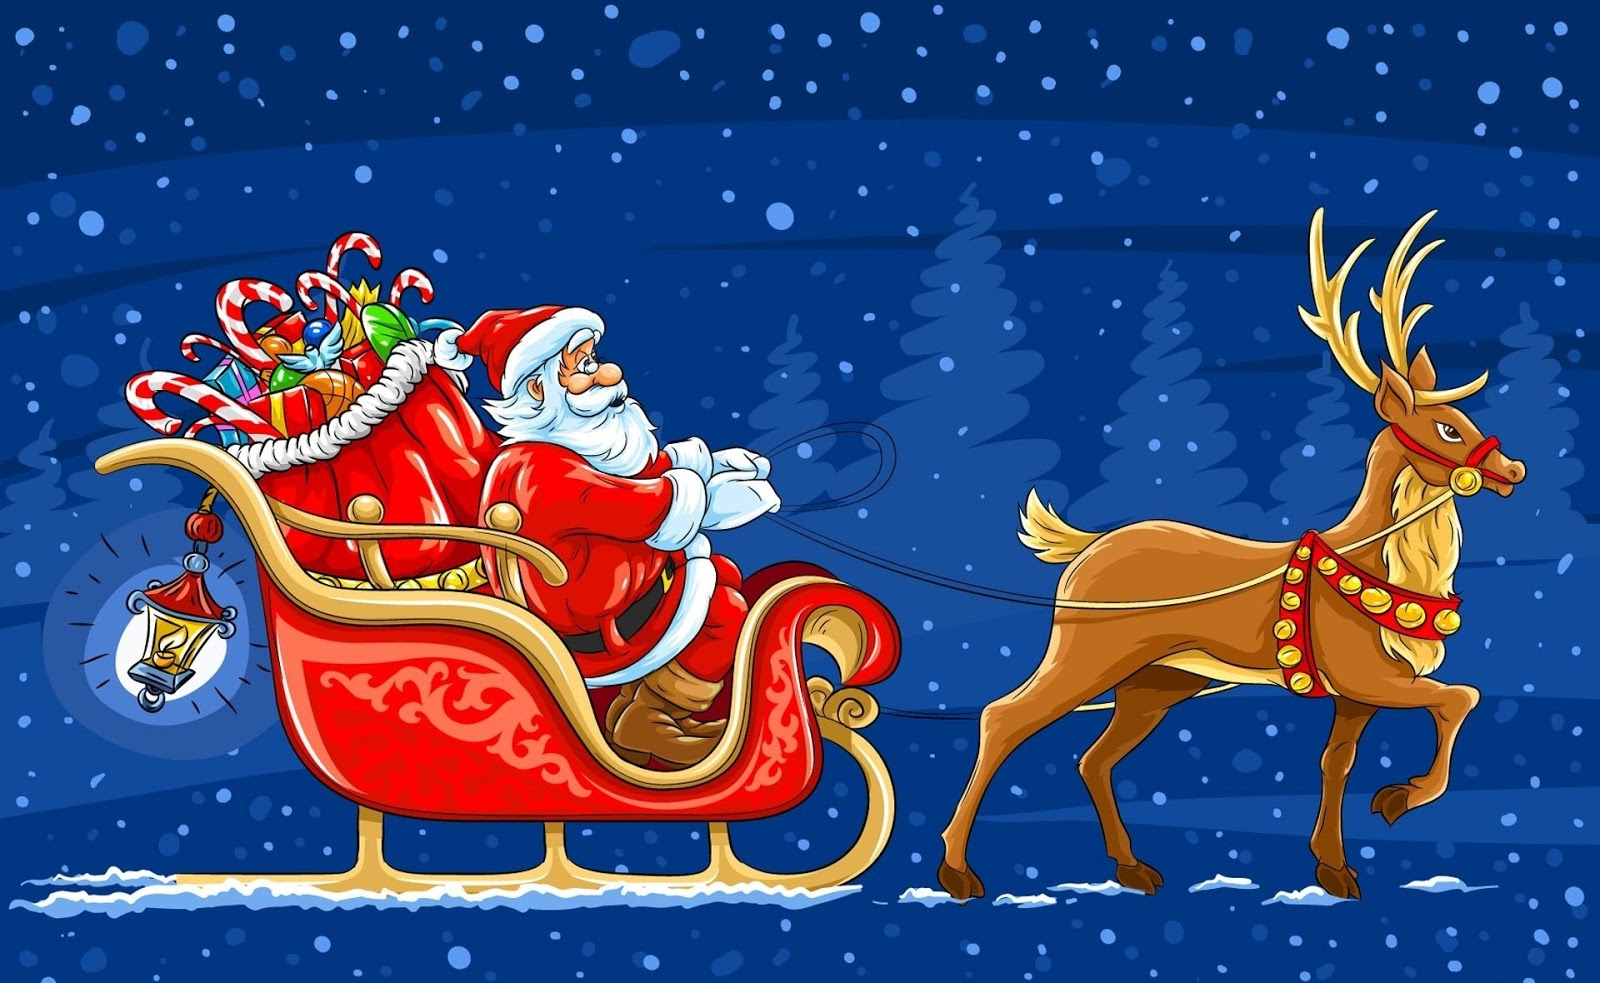 Merry Christmas HD Images, Wallpapers - Free Download